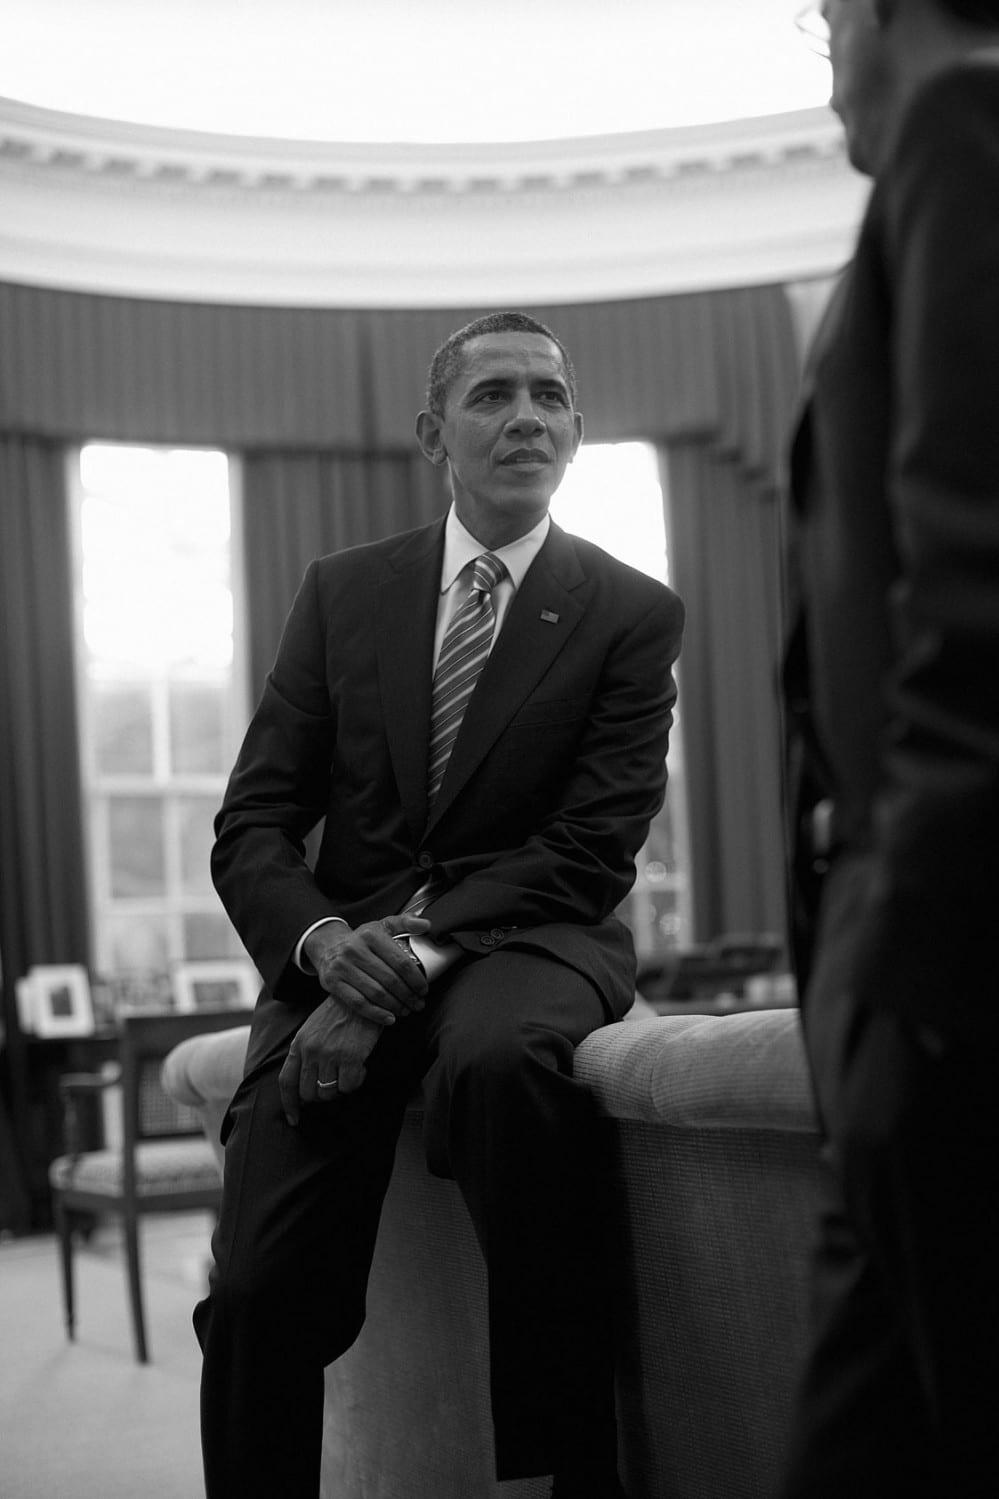 Christopher Morris | The Power of the Presidency | Barack Obama